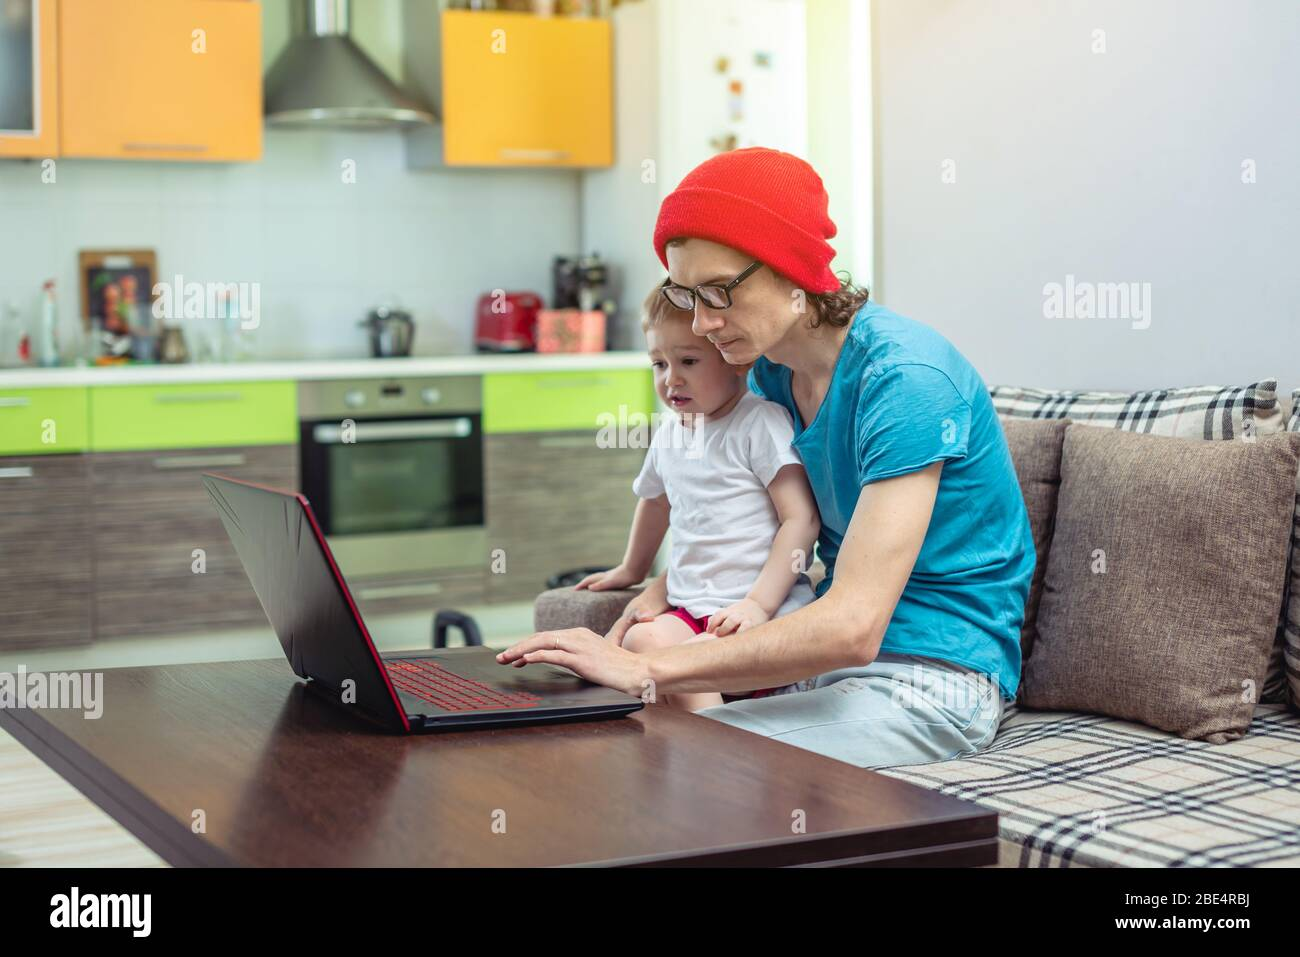 Midwife and Life - 3 Quick Ways to Make Your Technology Child ...